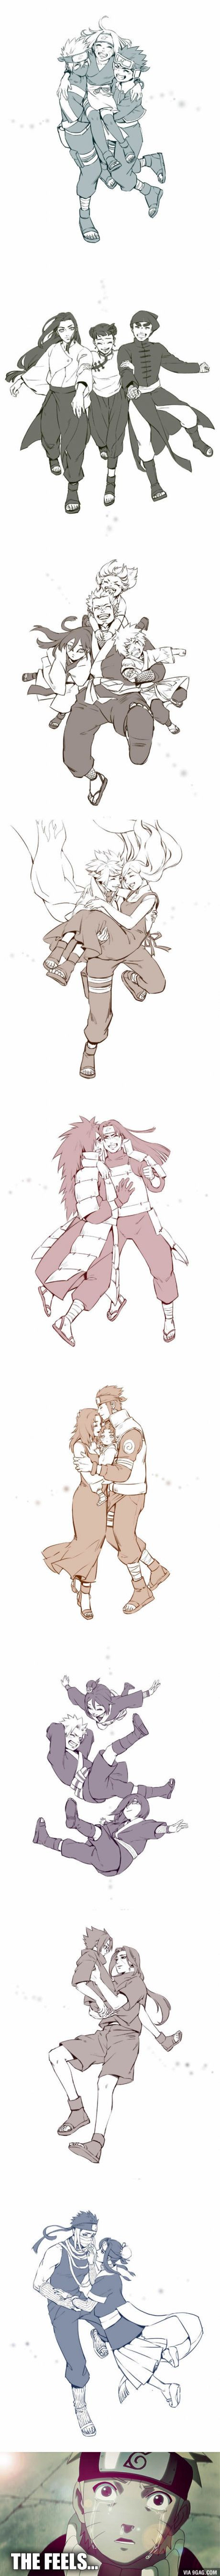 Fan Artist reimagines happy ending for tragic Naruto characters (By Black Marlboro) Más